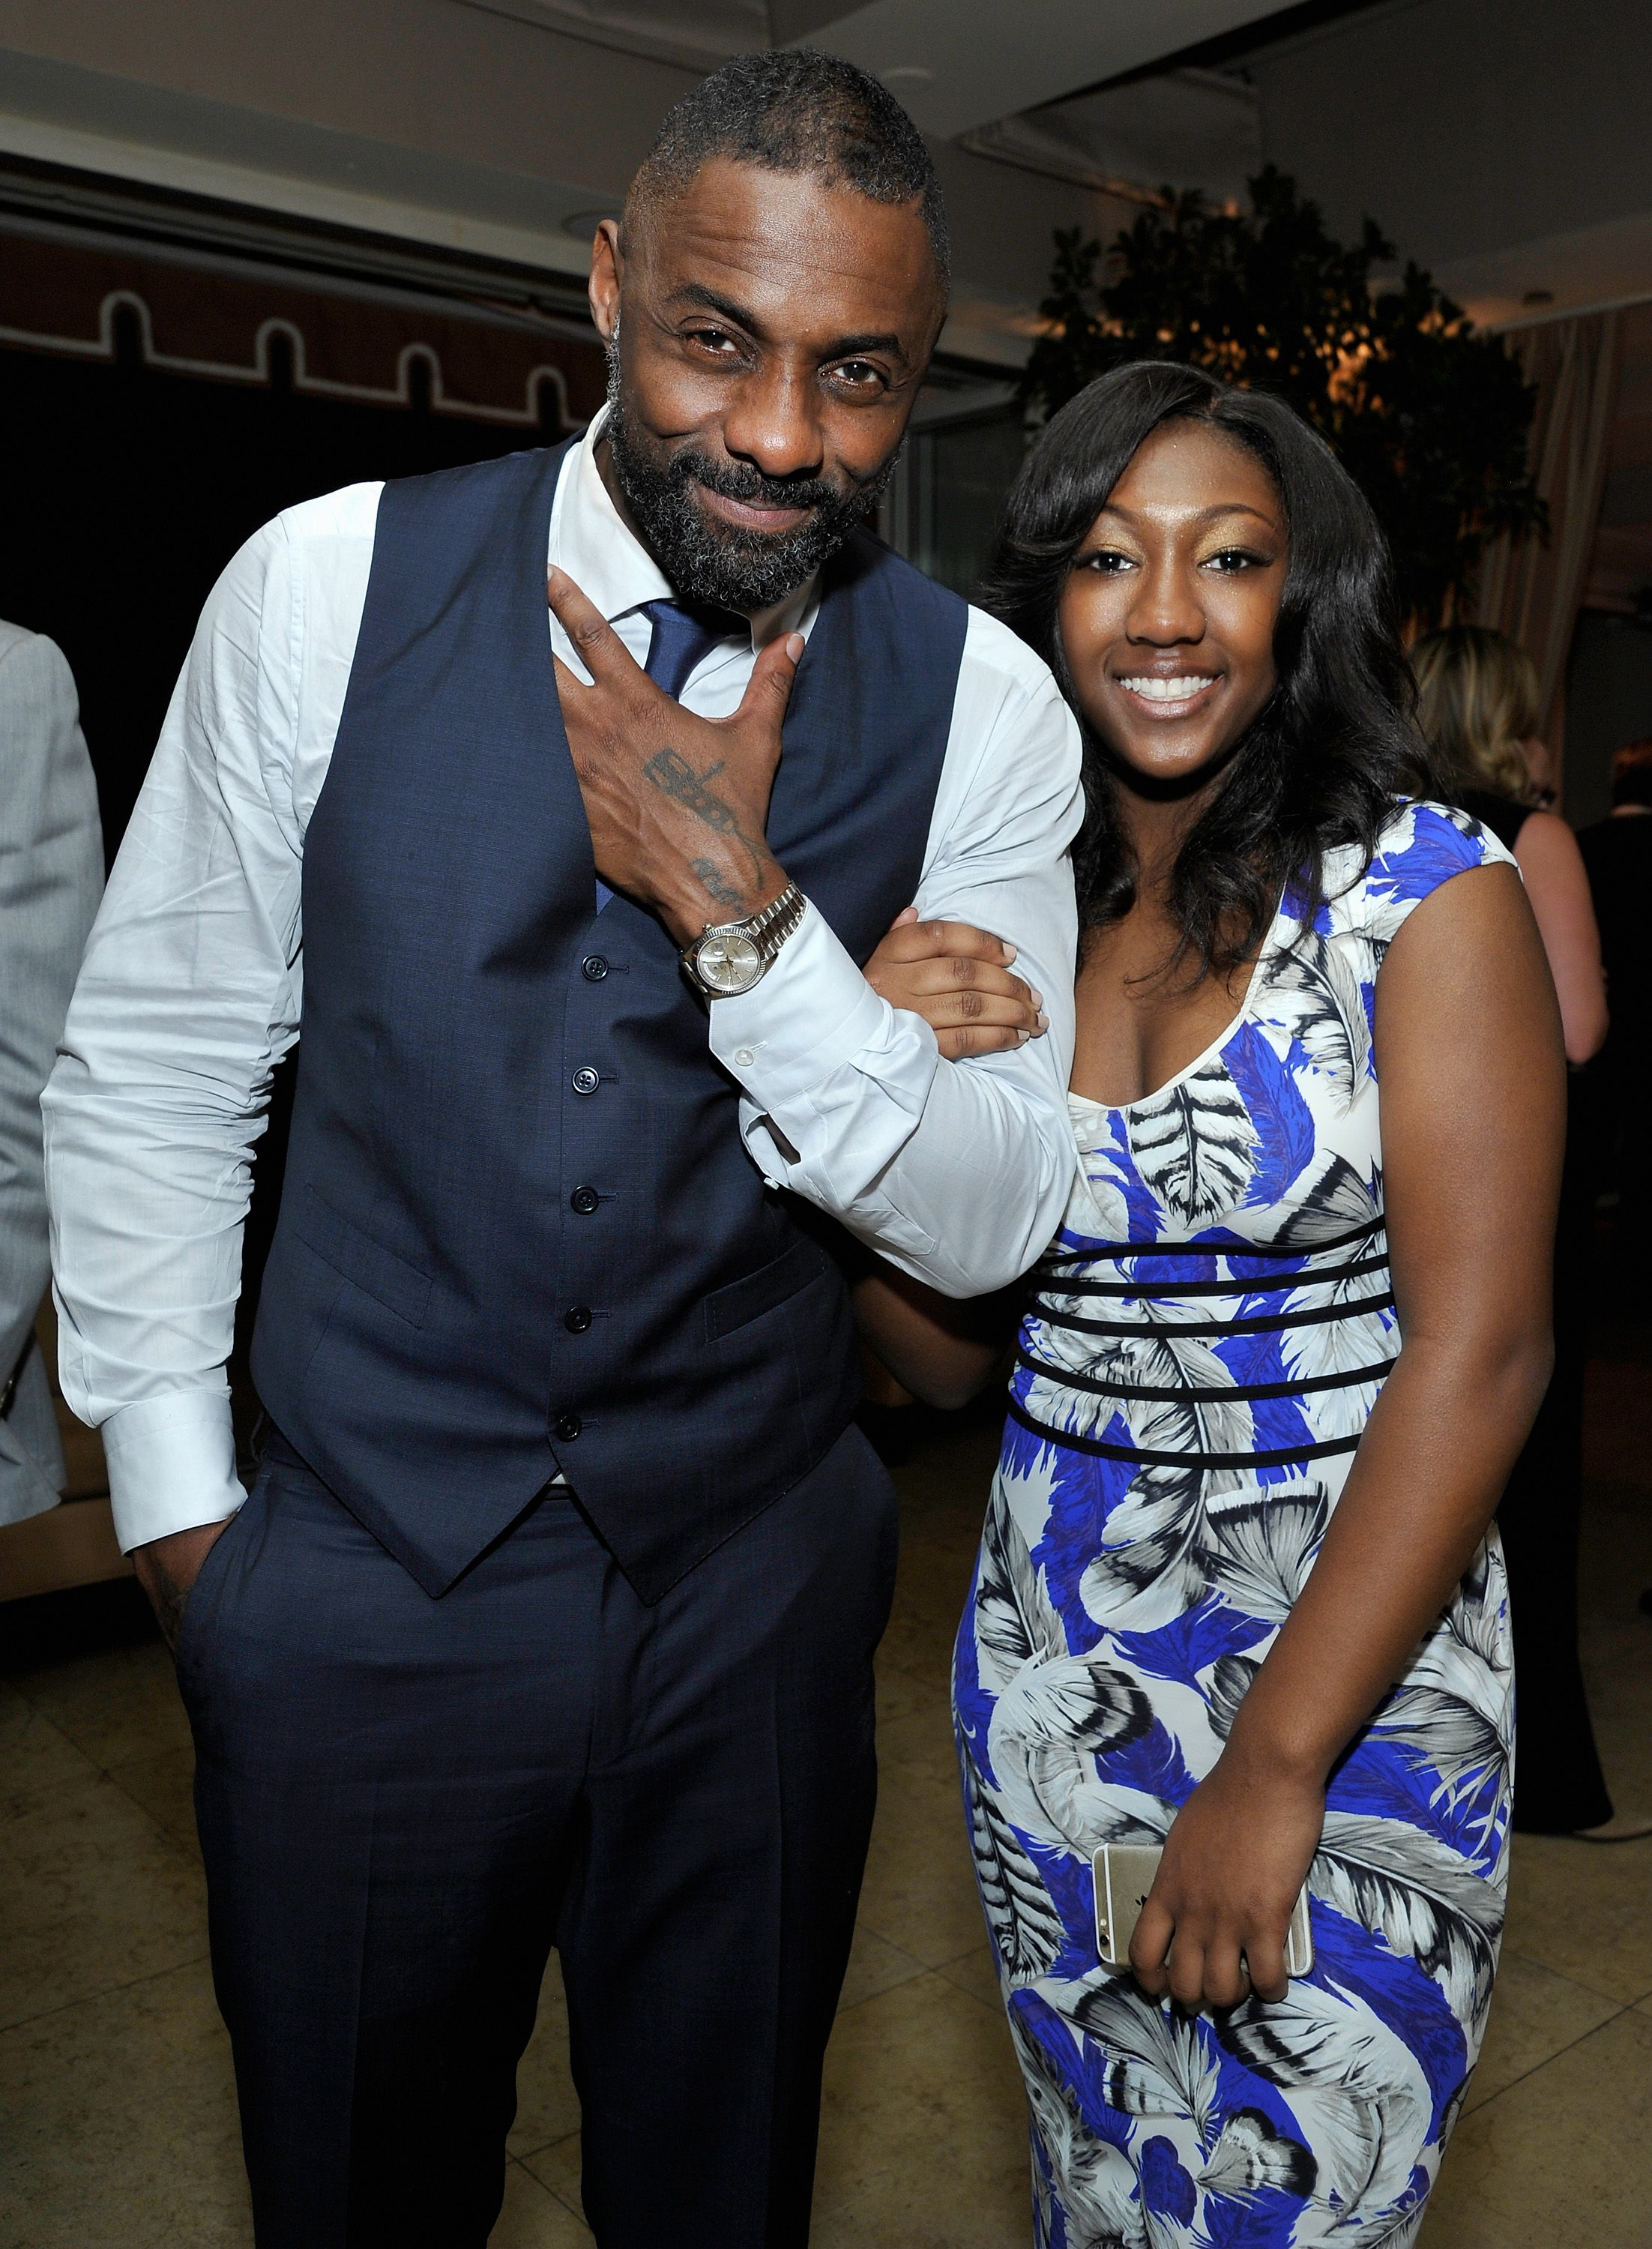 Actor Idris Elba and daughter Isan Elba attend the Weinstein Company & Netflix's 2016 SAG after-party hosted by Absolut Elyx at Sunset Tower on January 30, 2016 | Photo: Getty Images